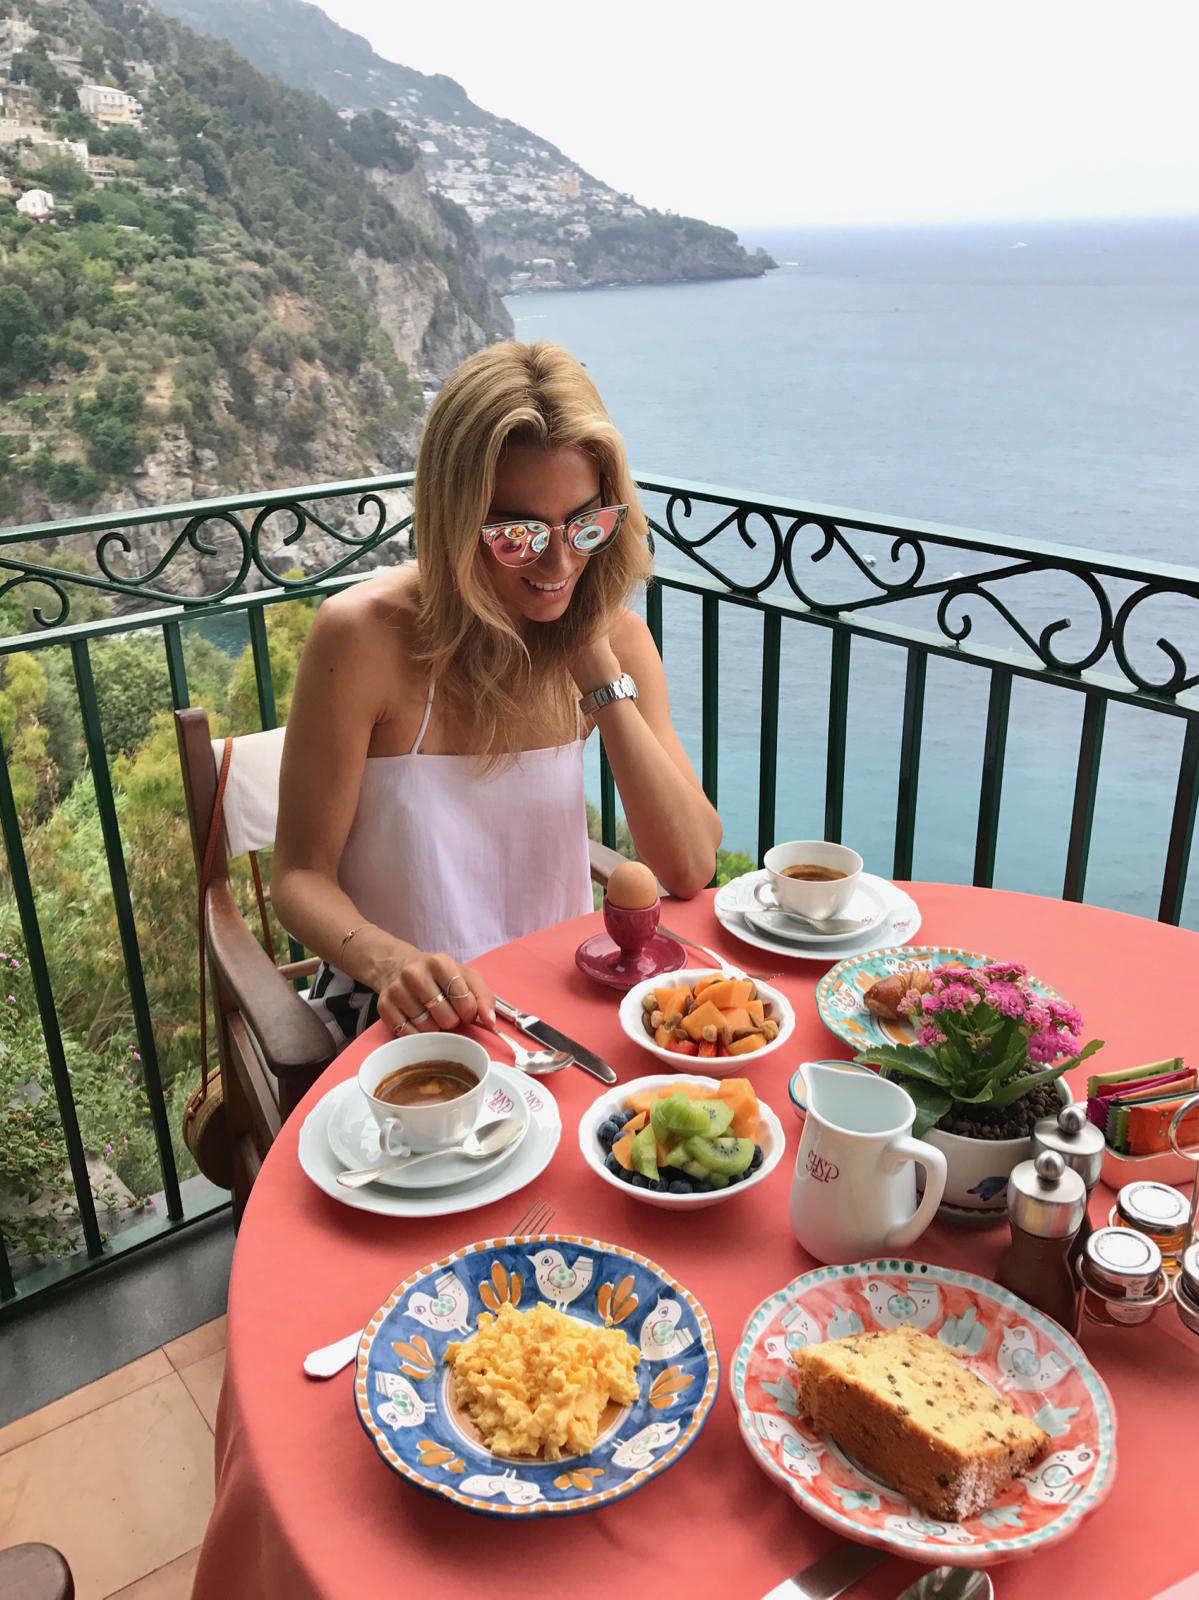 Where to eat in Positano Italy, Luxury Hotel, Il San Pietro Positano, Top things to eat, see and do in Positano